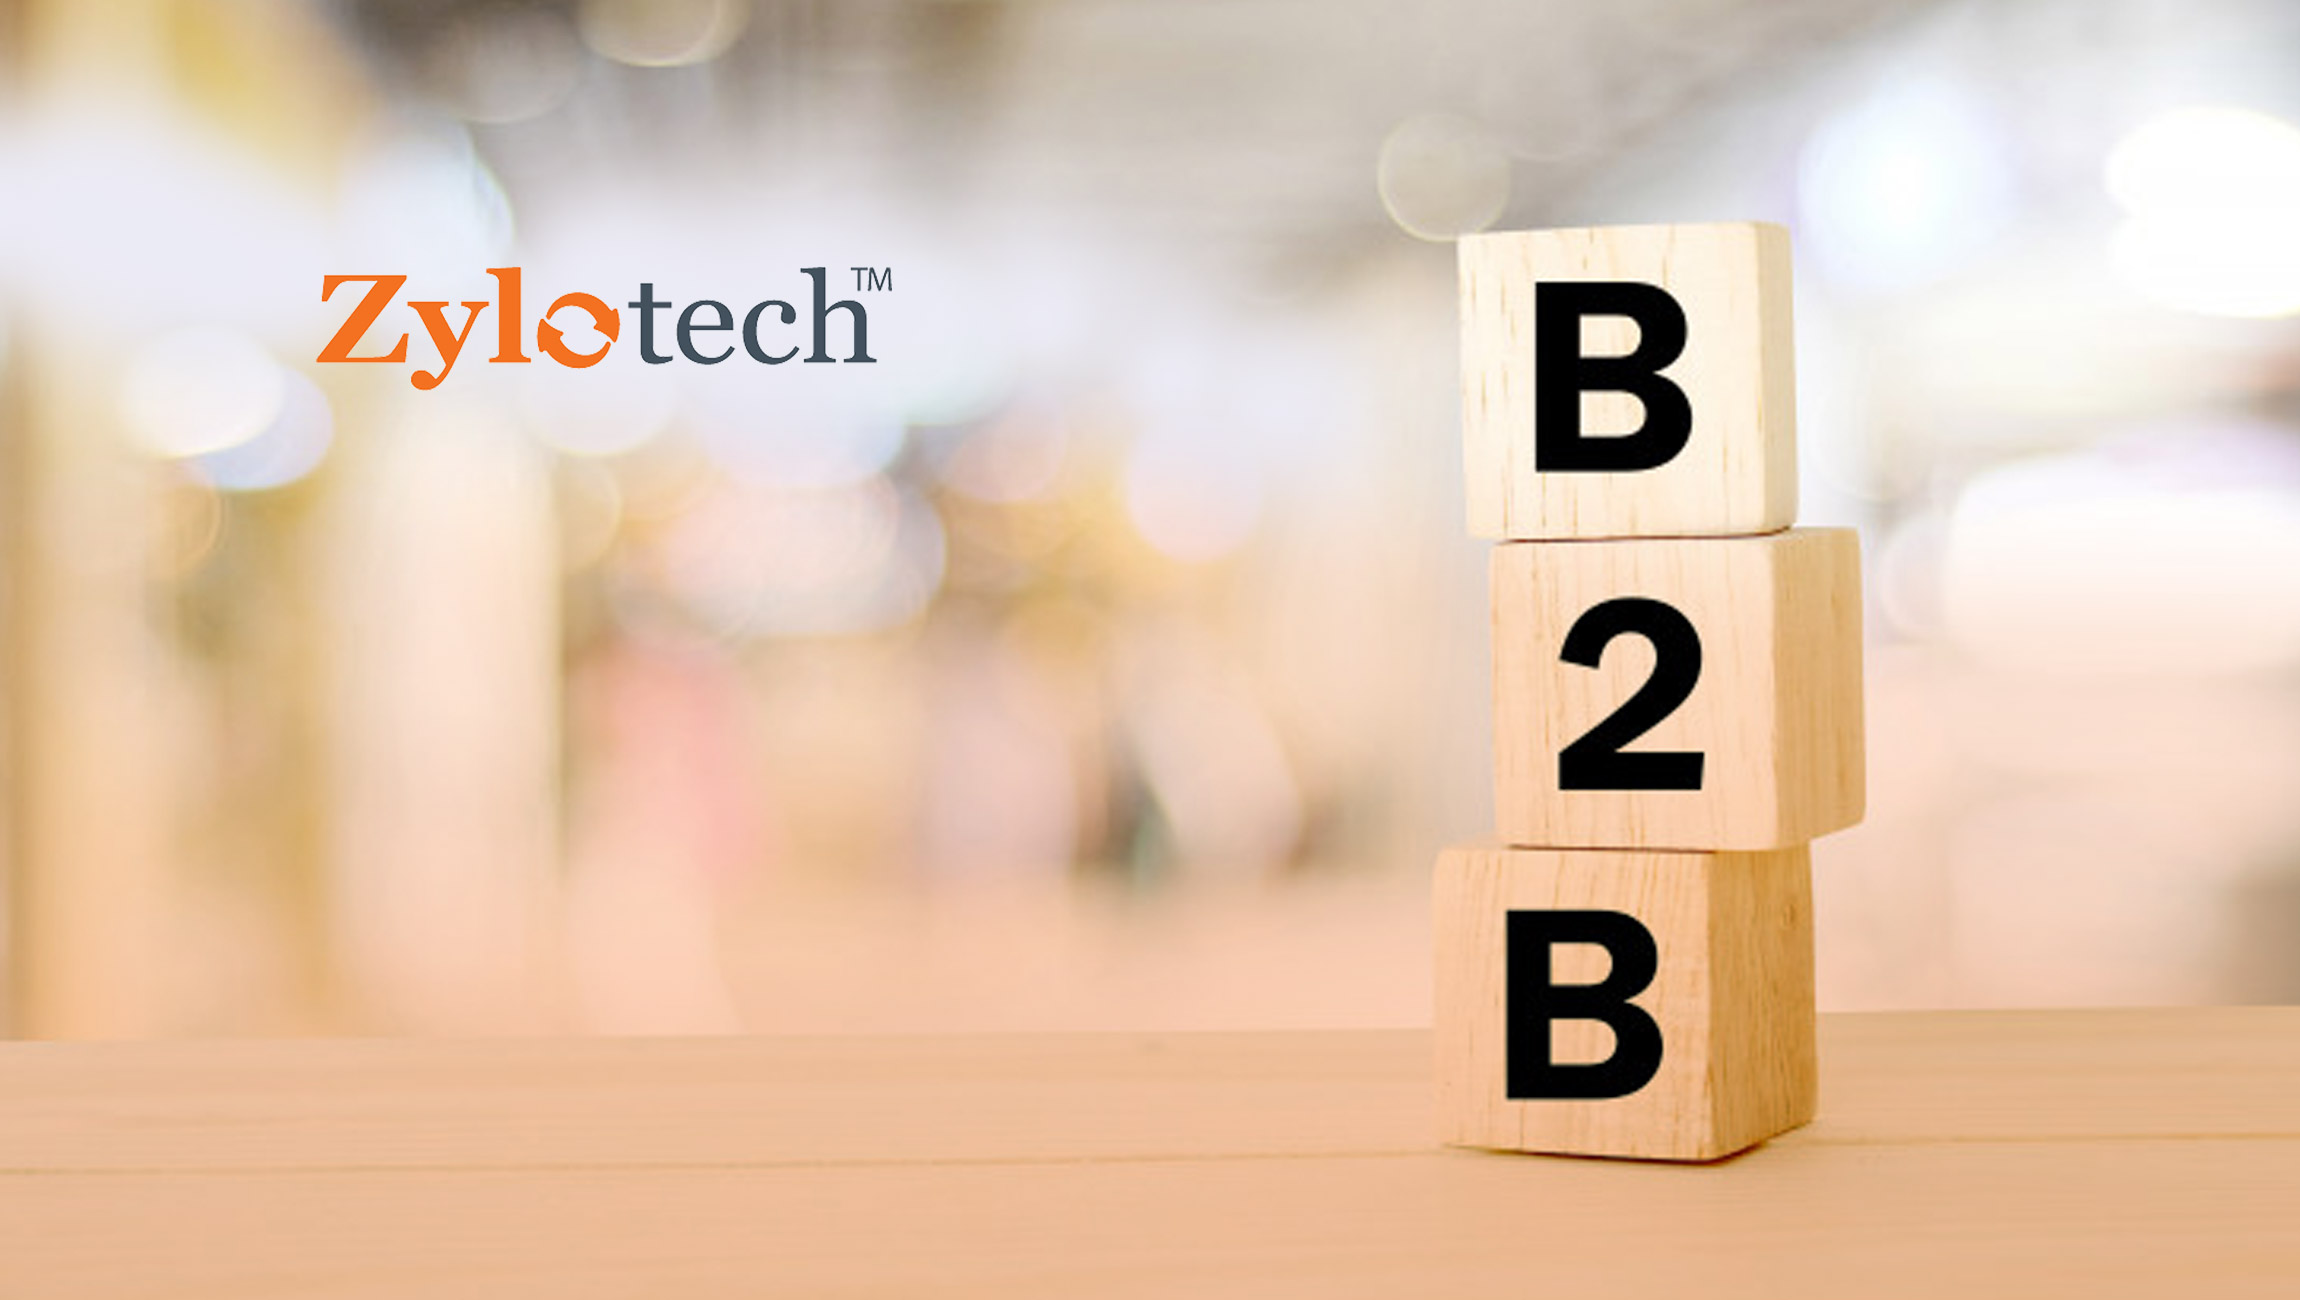 Zylotech Identified as One of the Most Significant Providers in B2B Customer Data Platforms (CDP) Report by Independent Research Firm